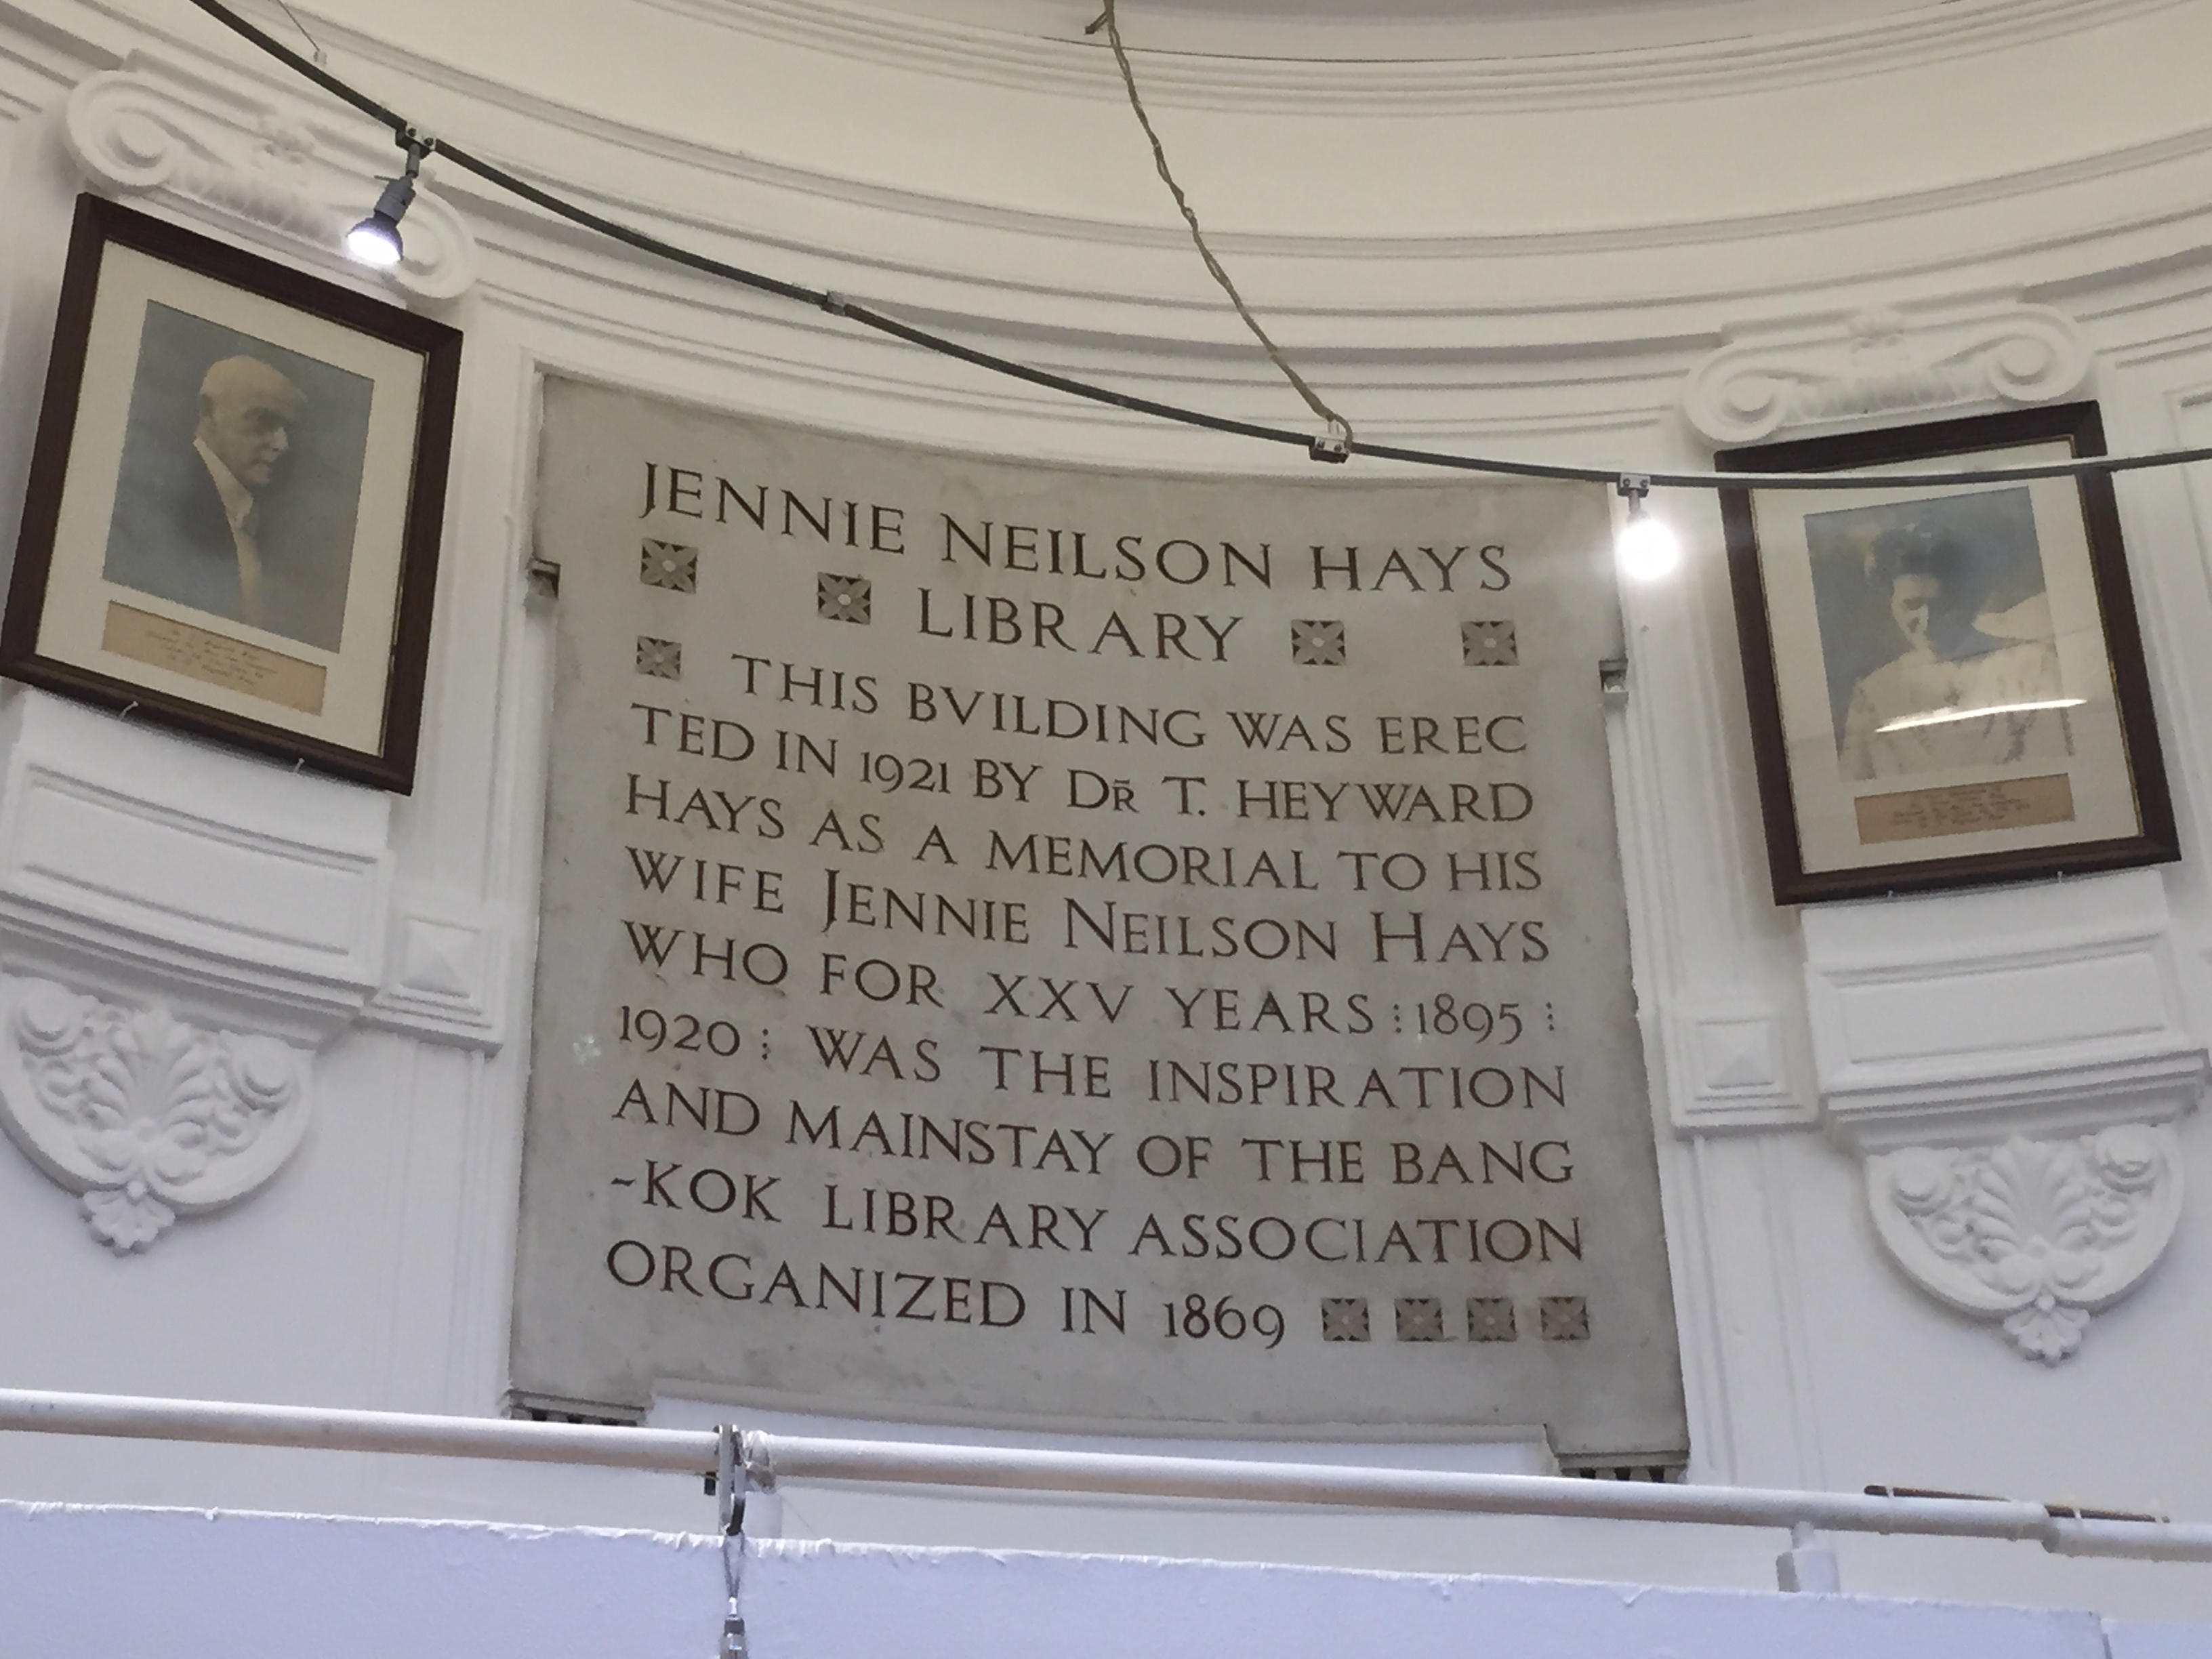 Dedication Plaque for Neilson Hays Library in Rotunda (Photo Catherine Clover, 2015)